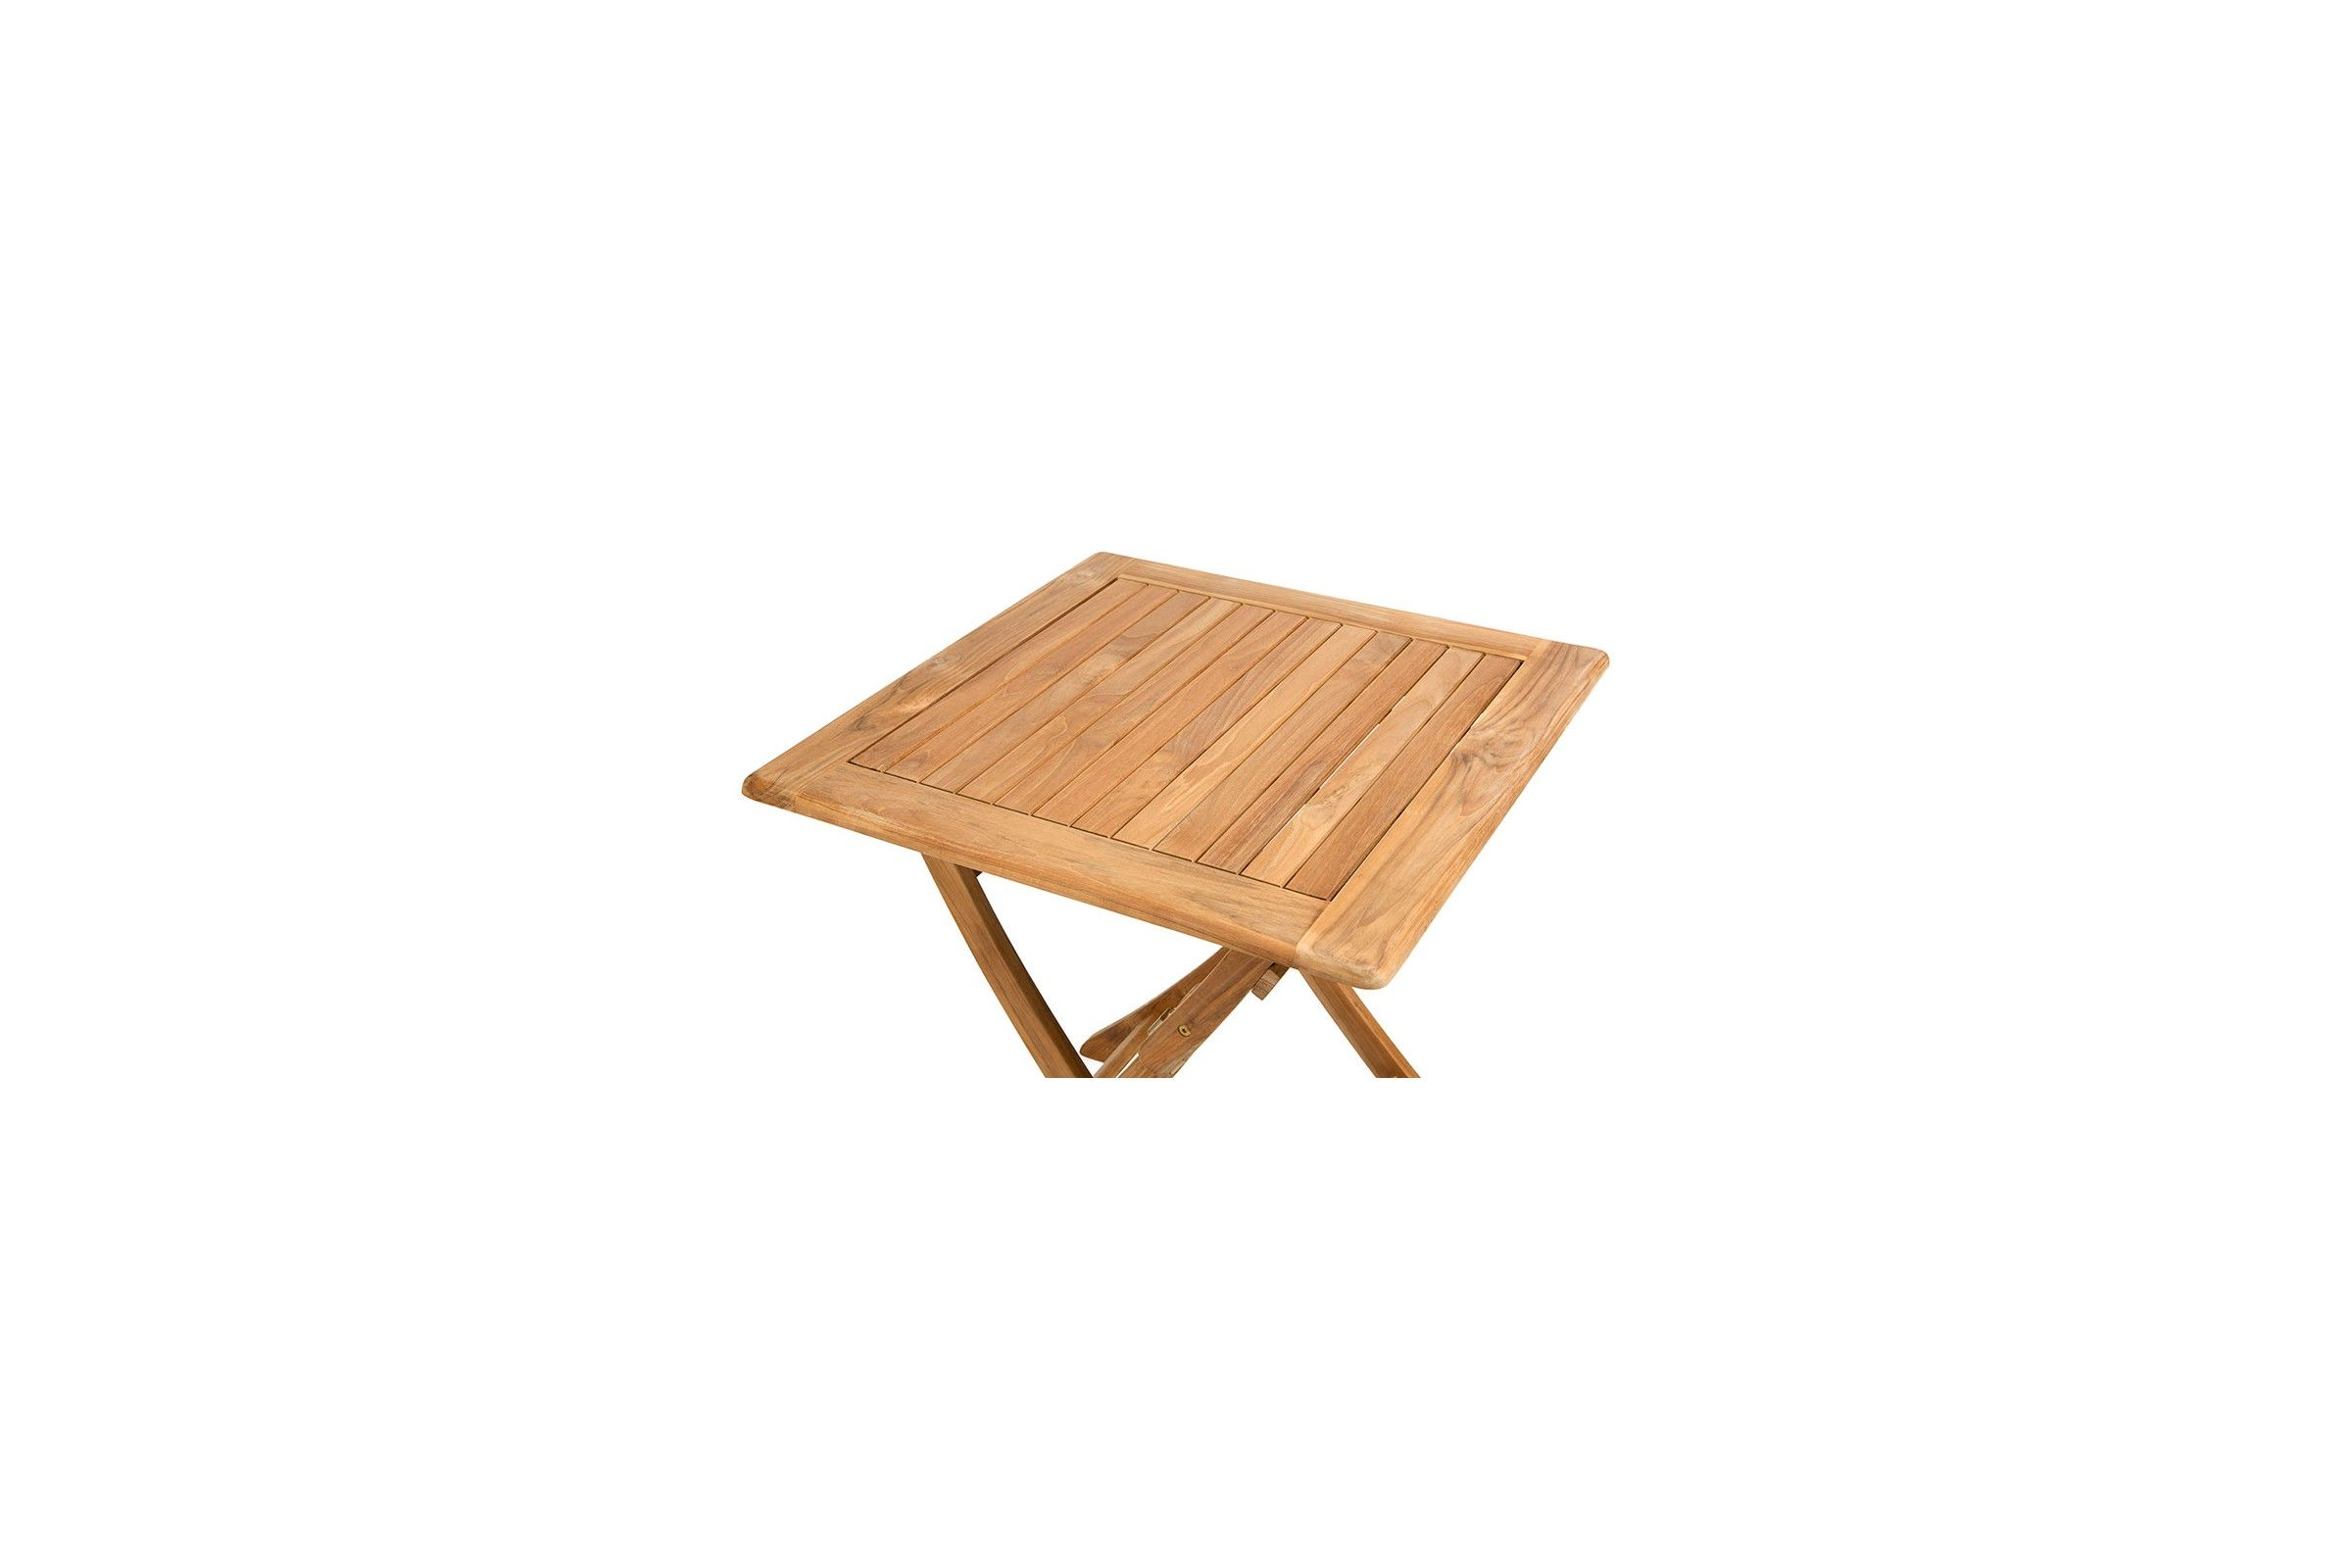 Awesome petite table basse jardin teck photos amazing for Table basse carree bois